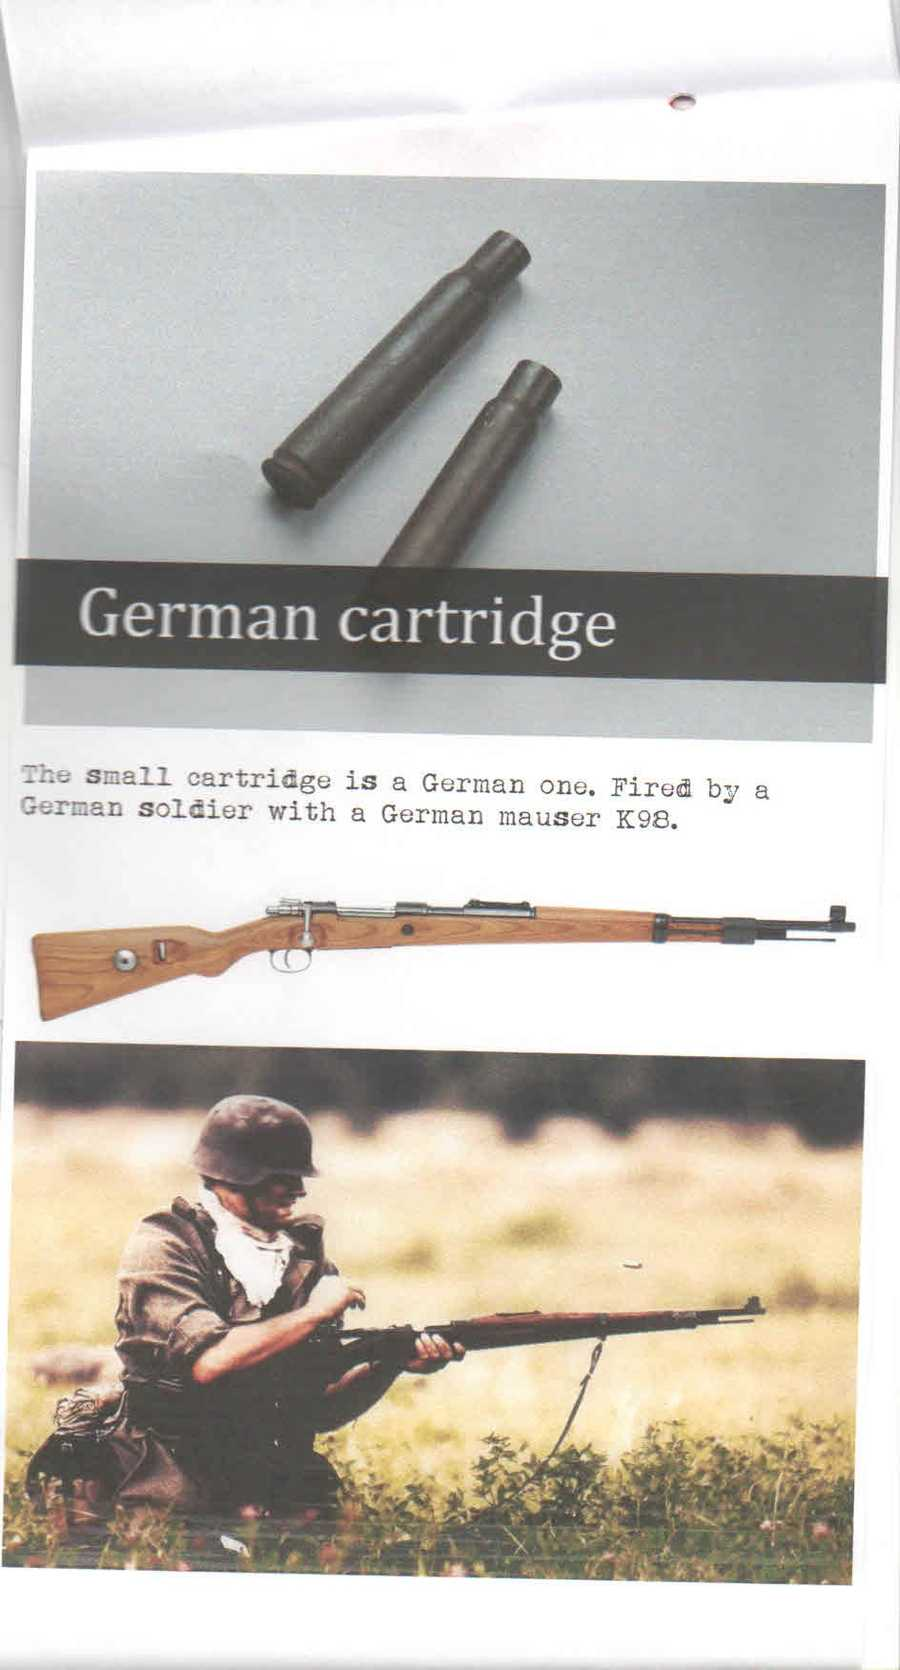 These small cartridges were used by a German soldier with a German mauser K98.